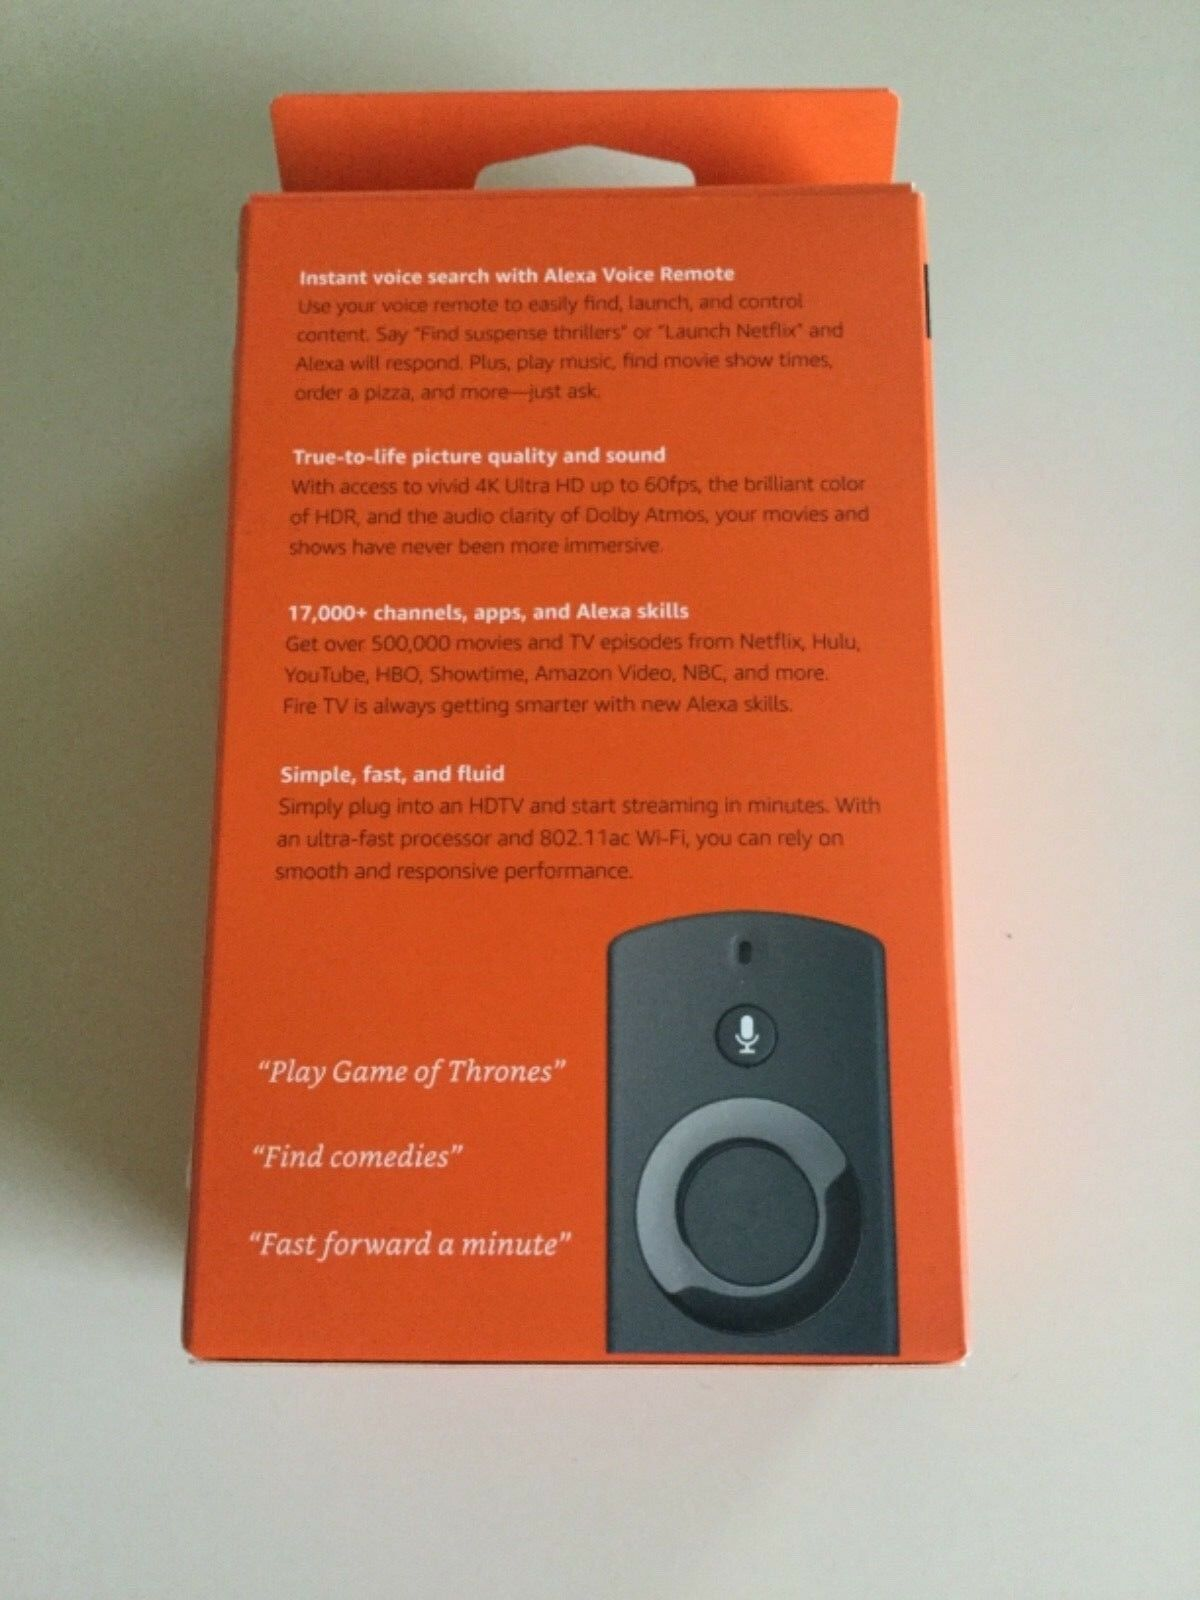 Amazon Fire TV (3rd Generation) Media Streamer - Black